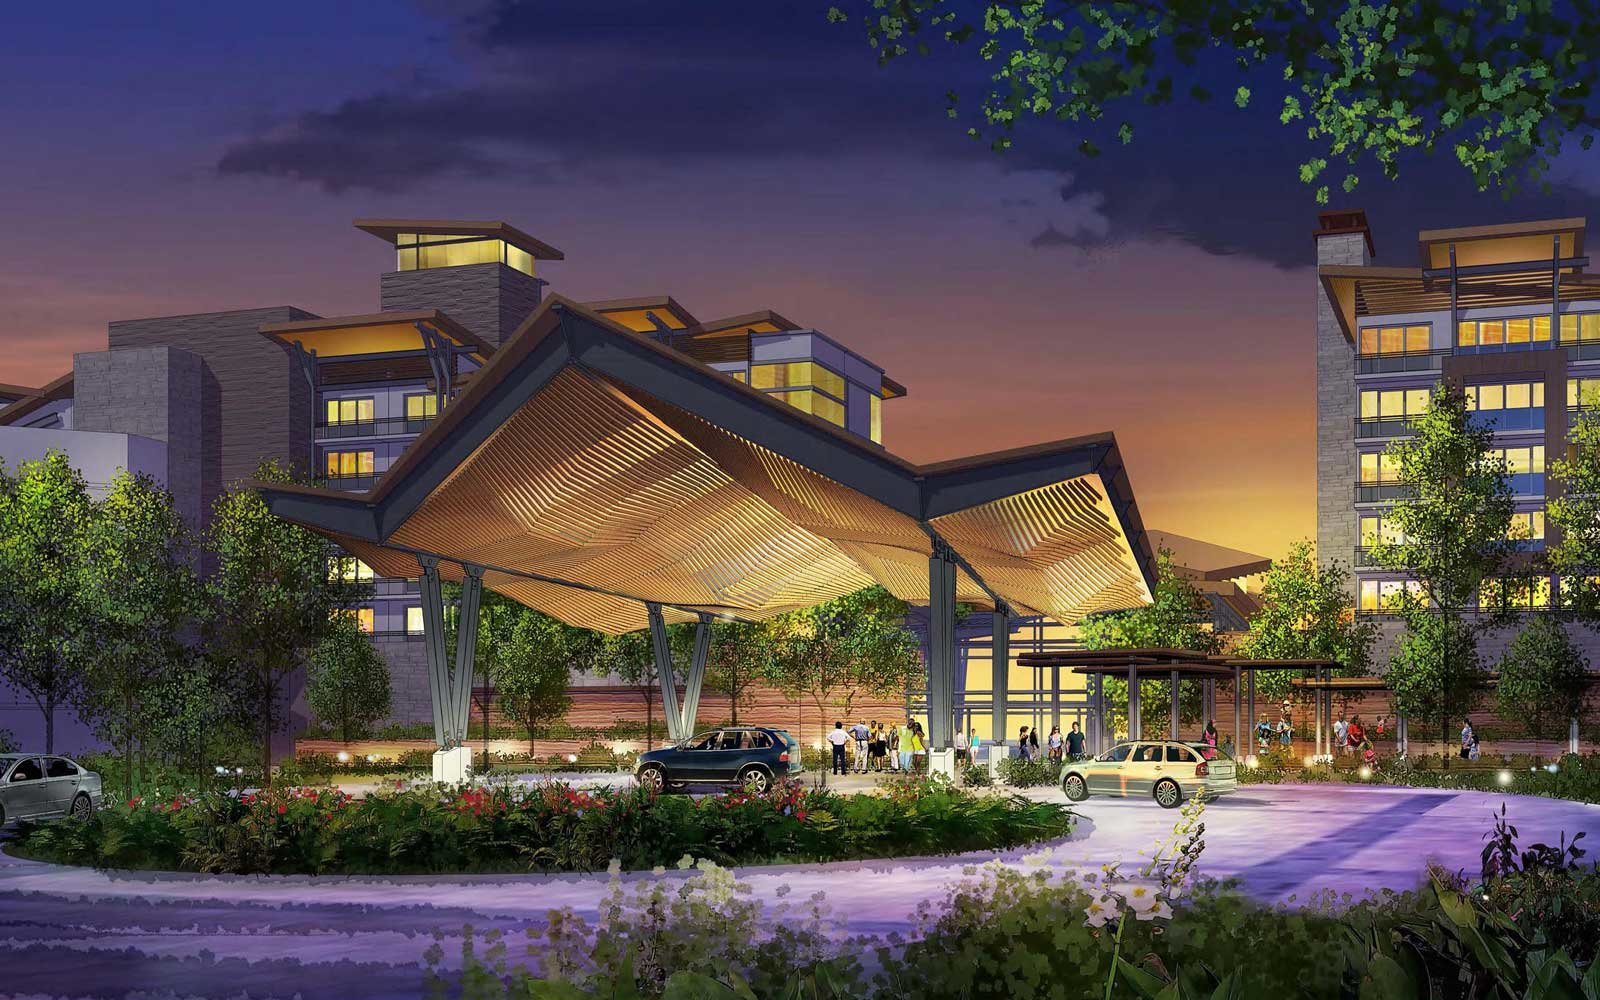 Walt Disney World Announced Luxury Hotel